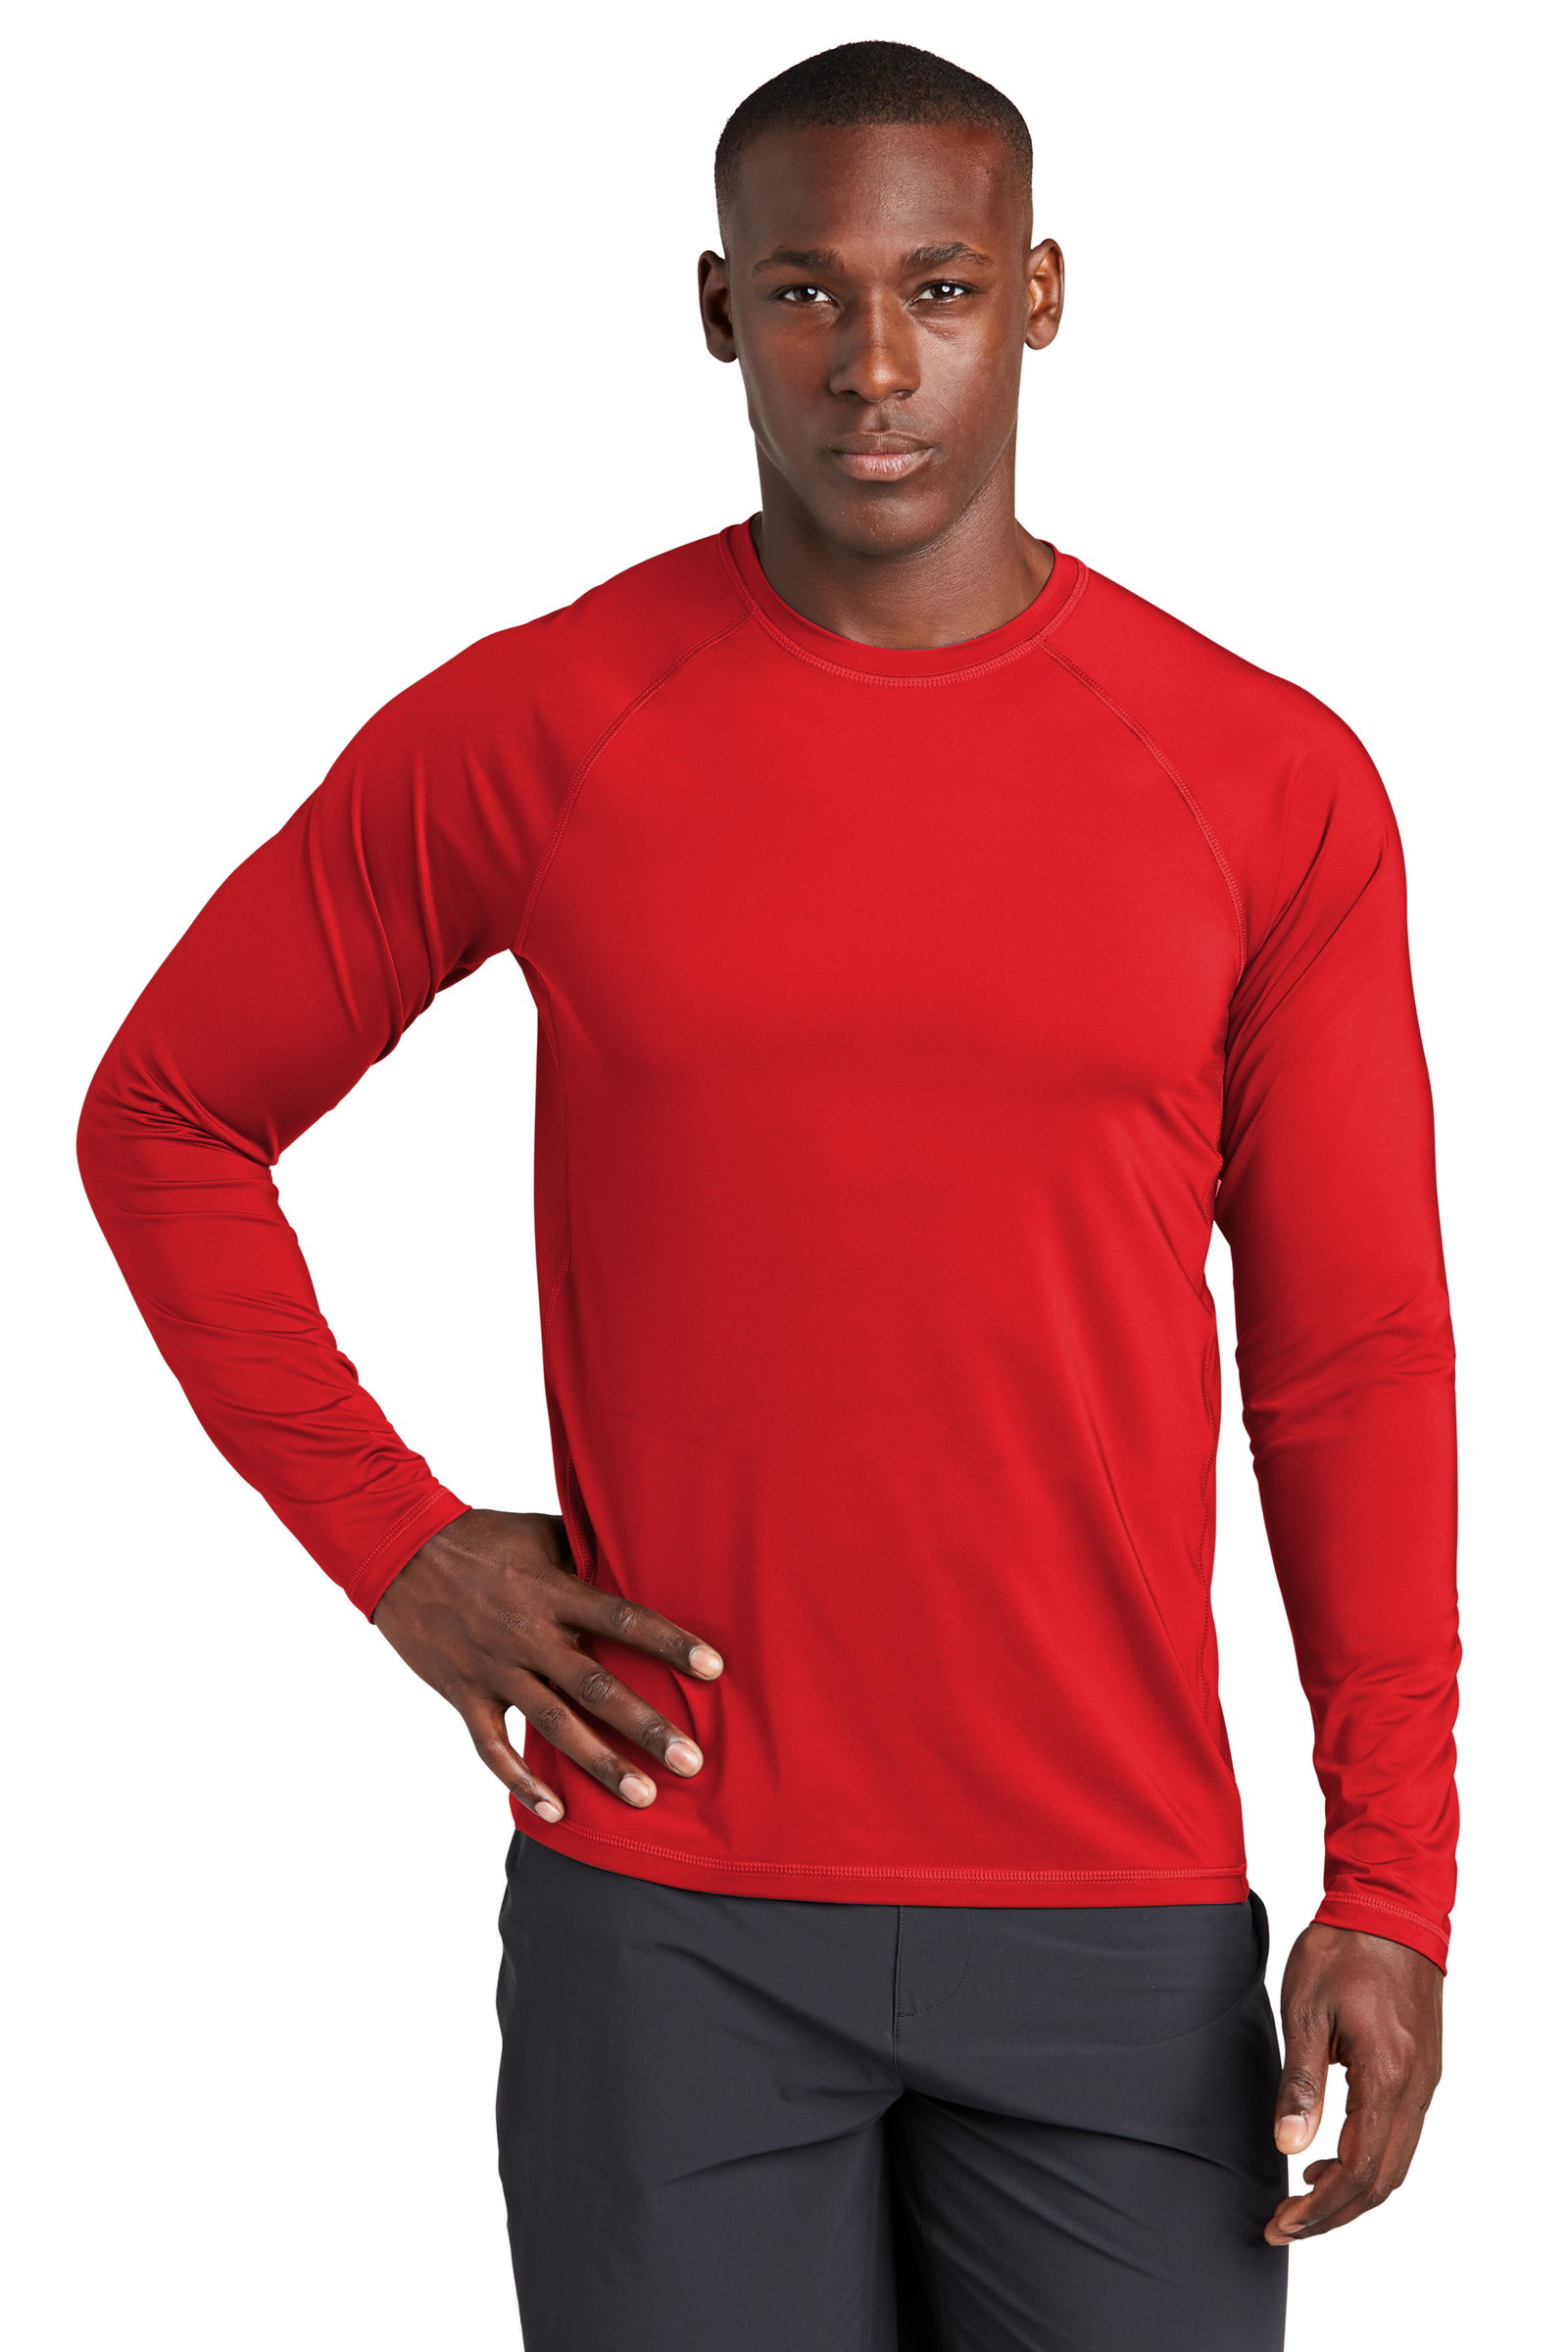 Sport-Tek Embroidered Men's Long Sleeve Rashguard Tee